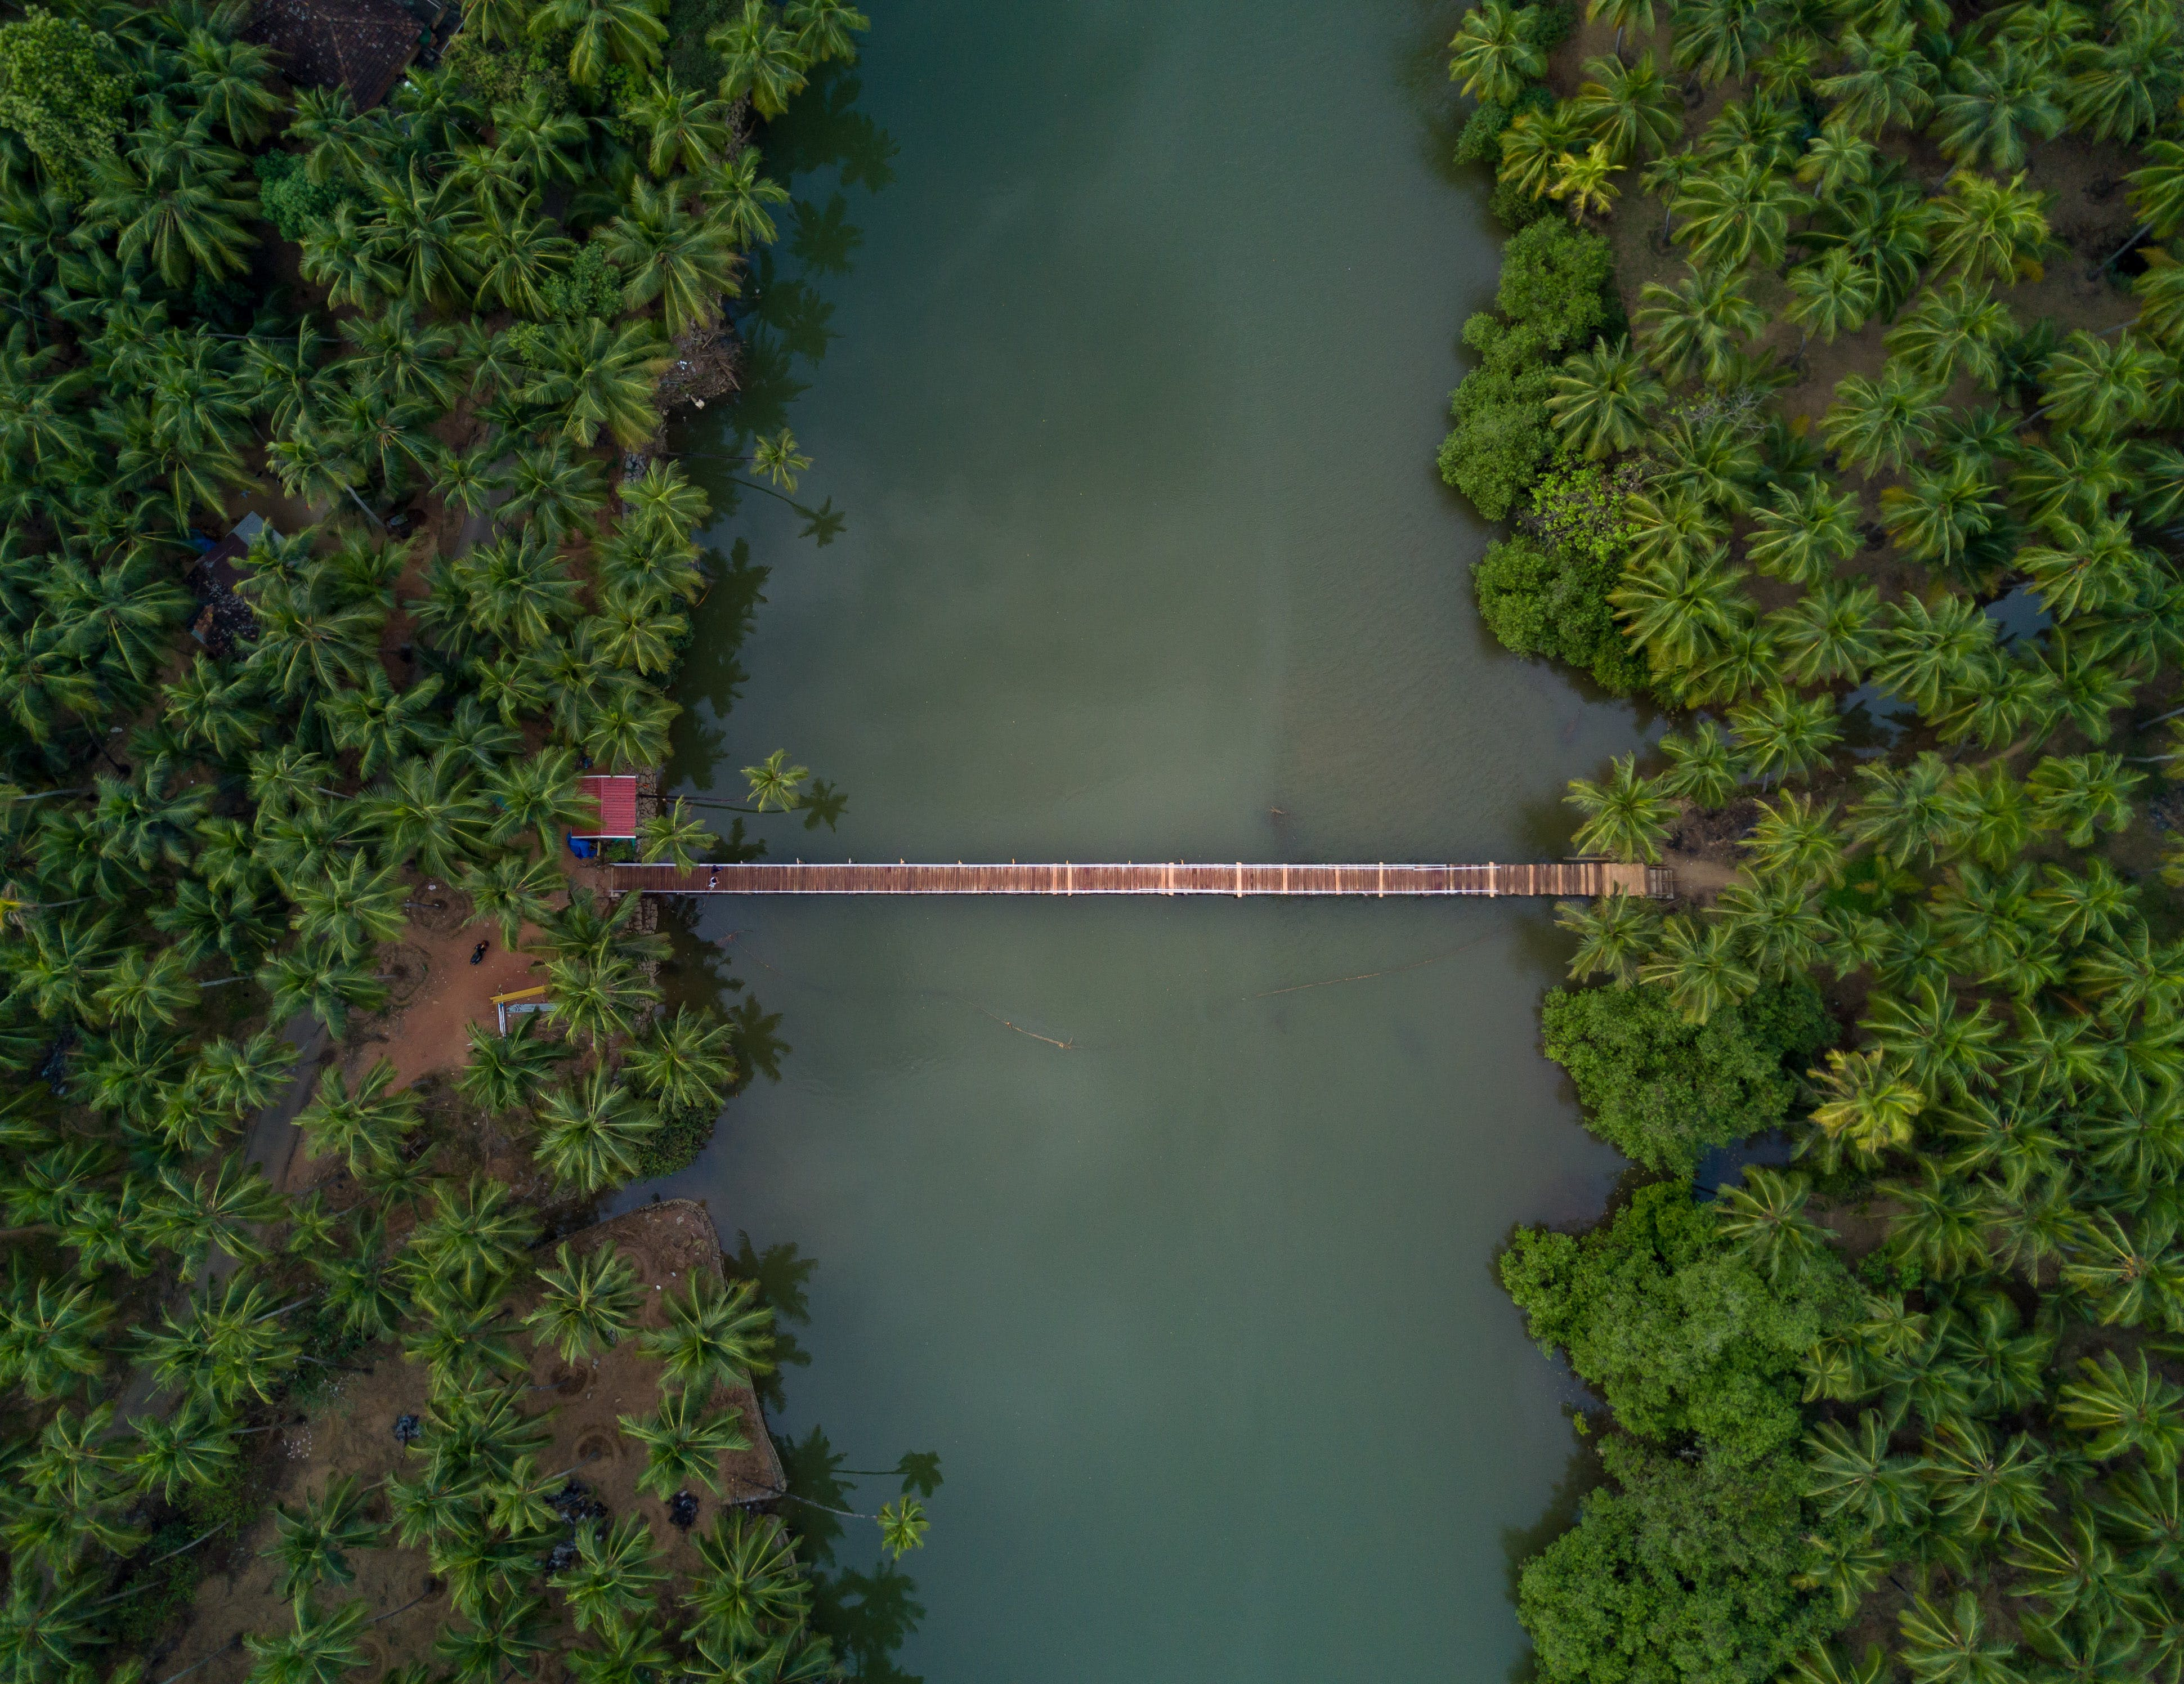 Aerial Photography of Brown Wooden Foot Bridge Connecting Two Forests